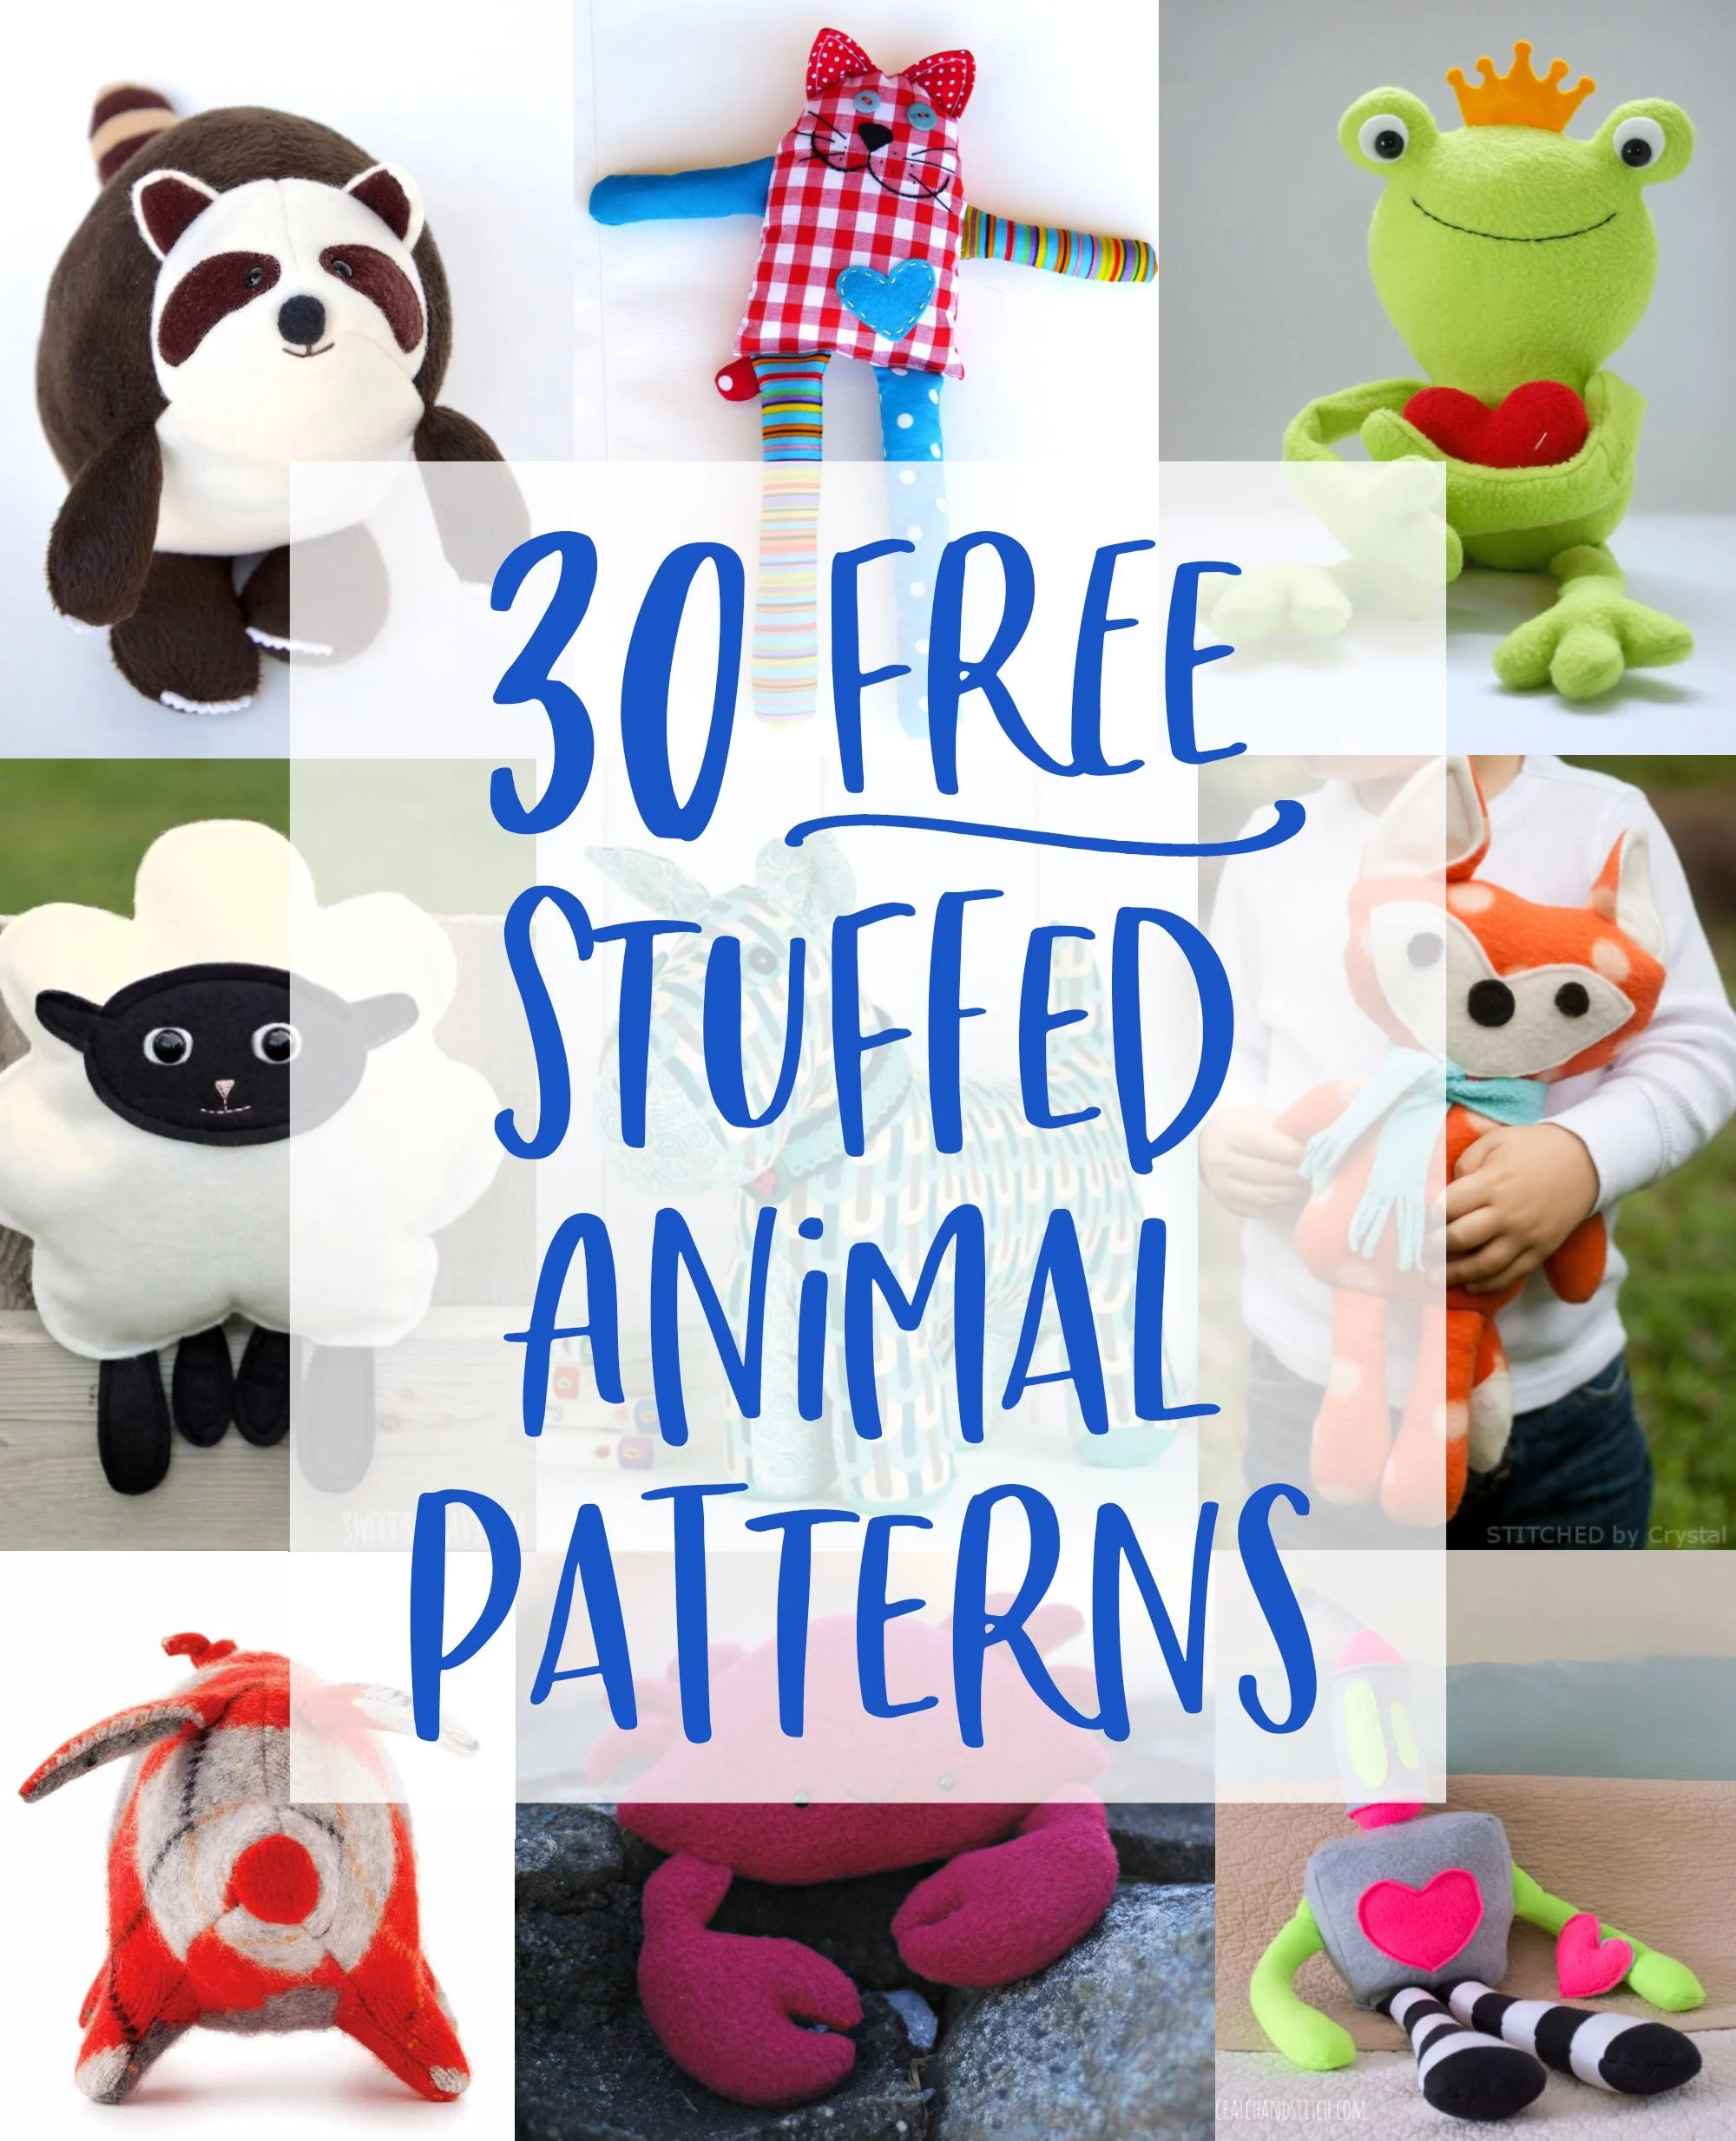 Stuffed Animal Pattern Free : stuffed, animal, pattern, Stuffed, Animal, Patterns, Tutorials, Bring